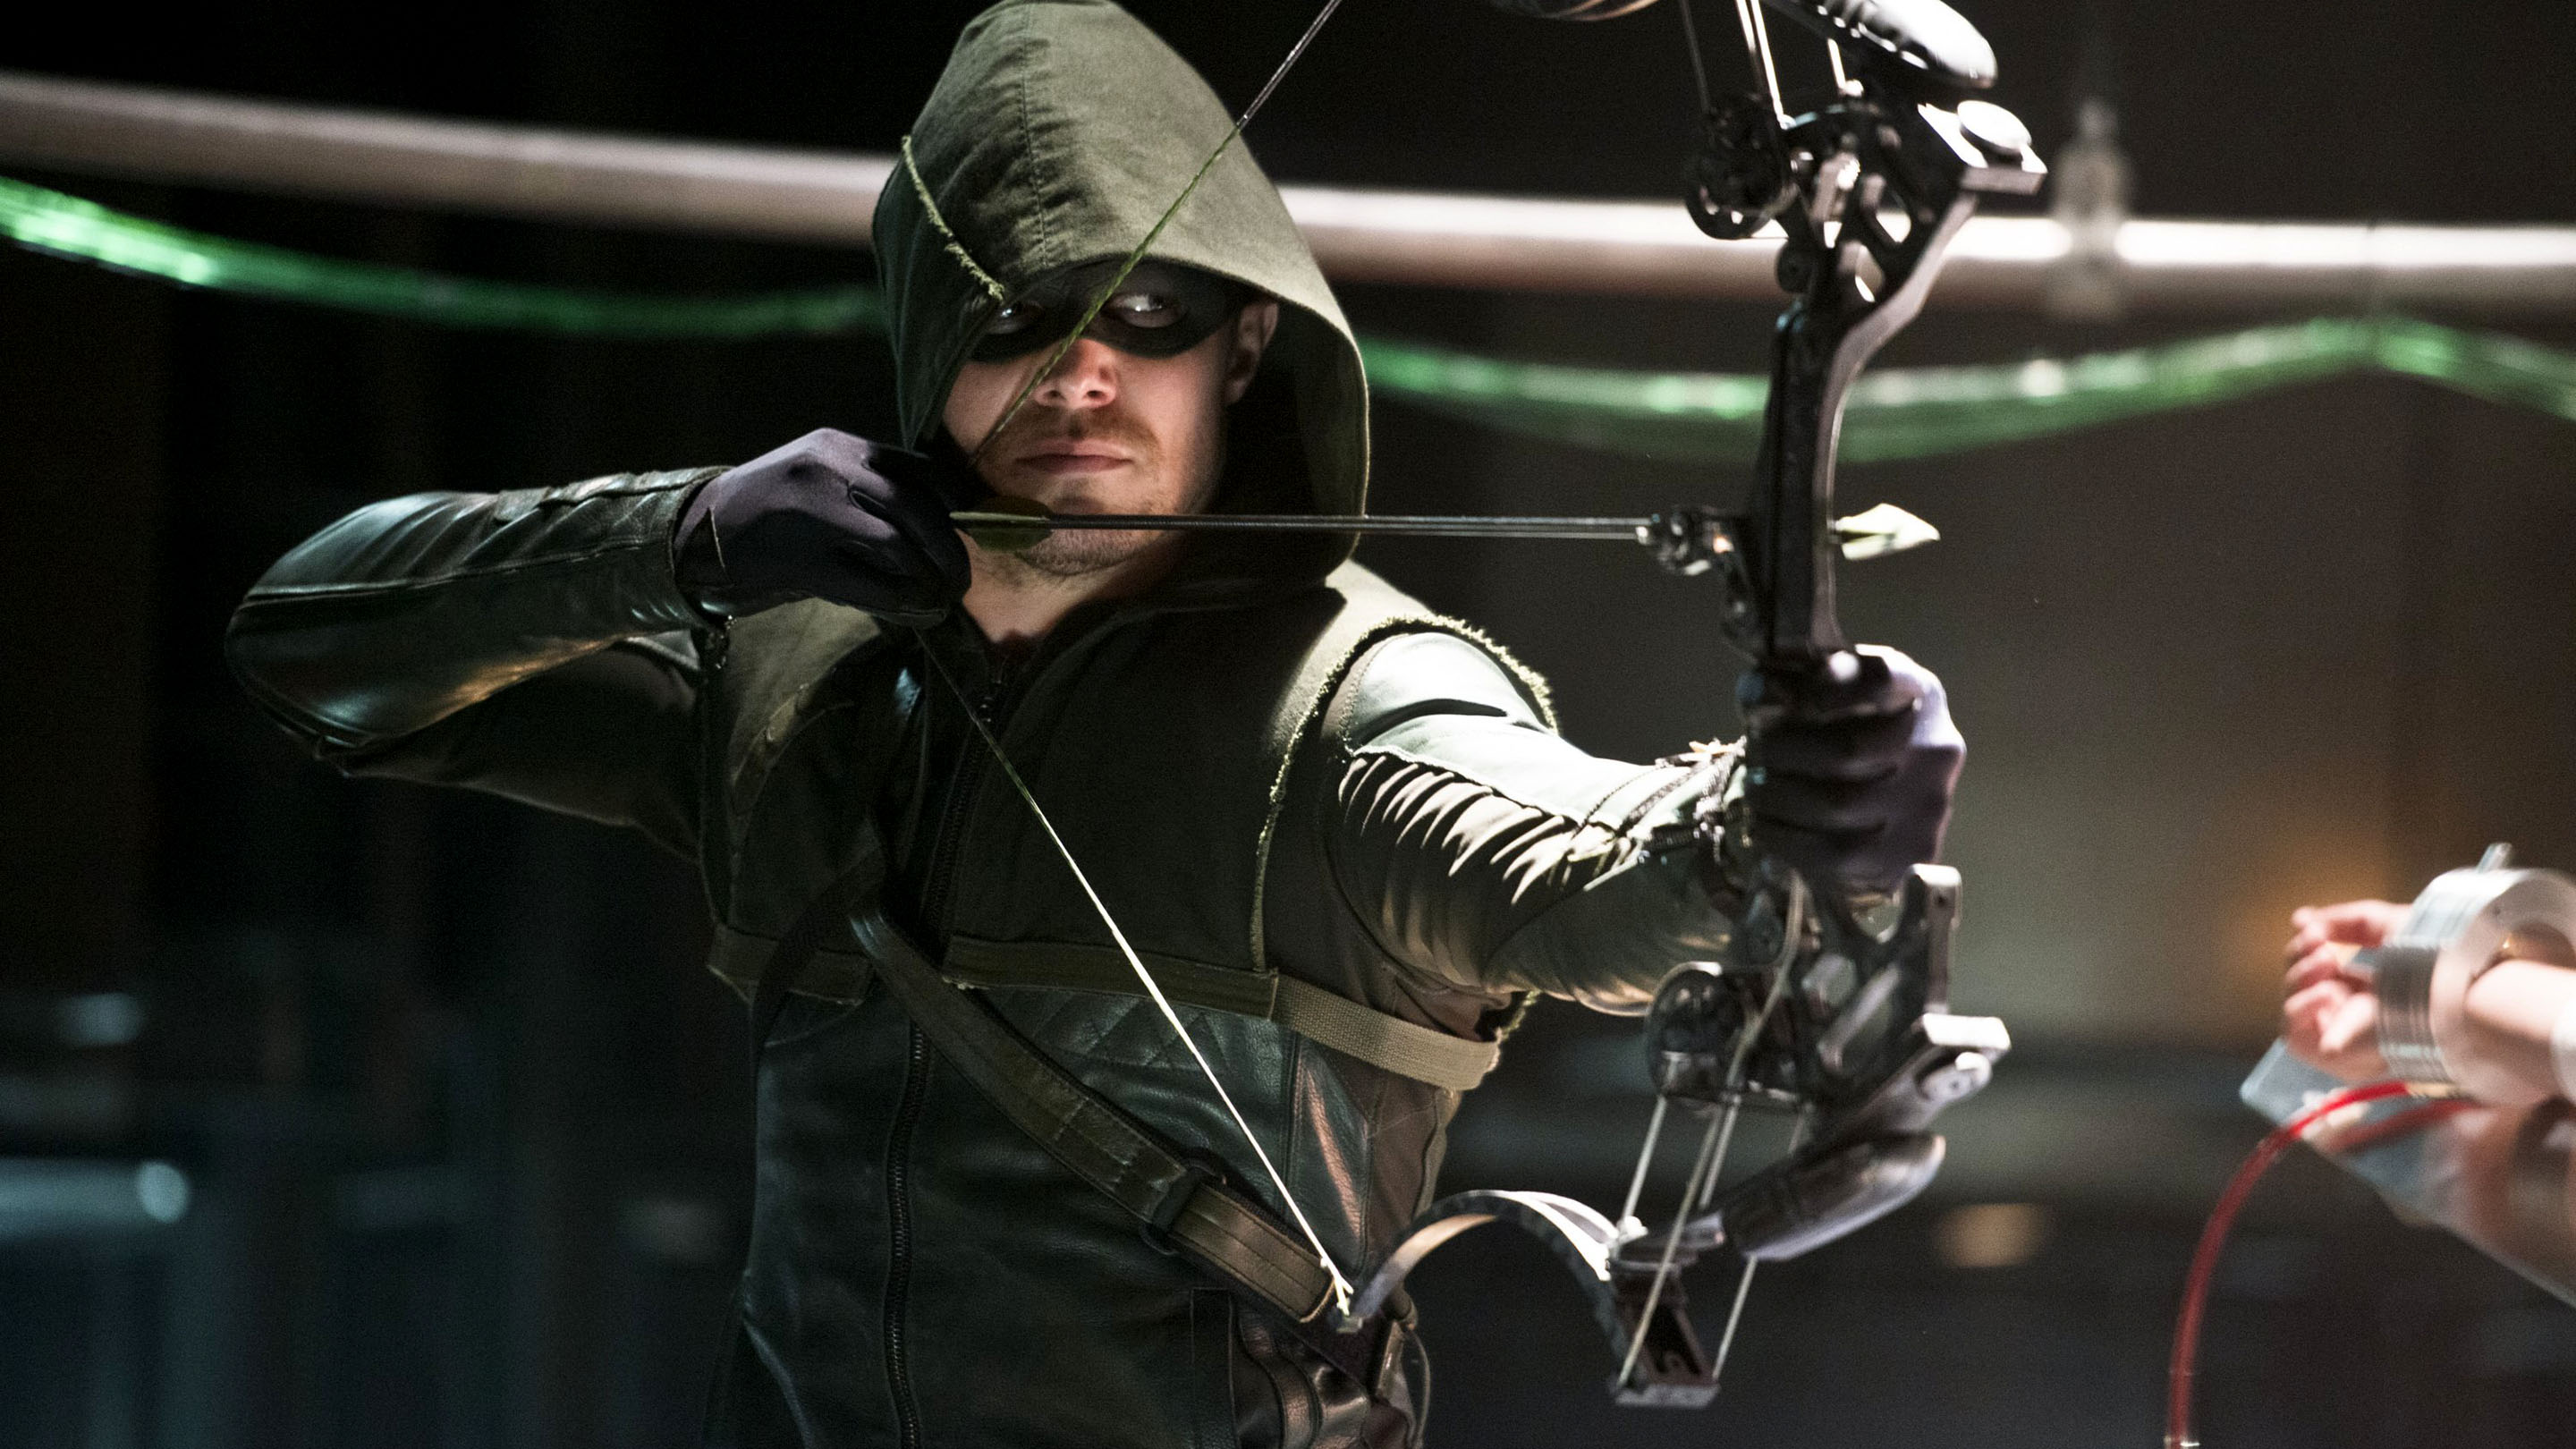 This new 'Arrow' Season 5 trailer is getting us insanely excited